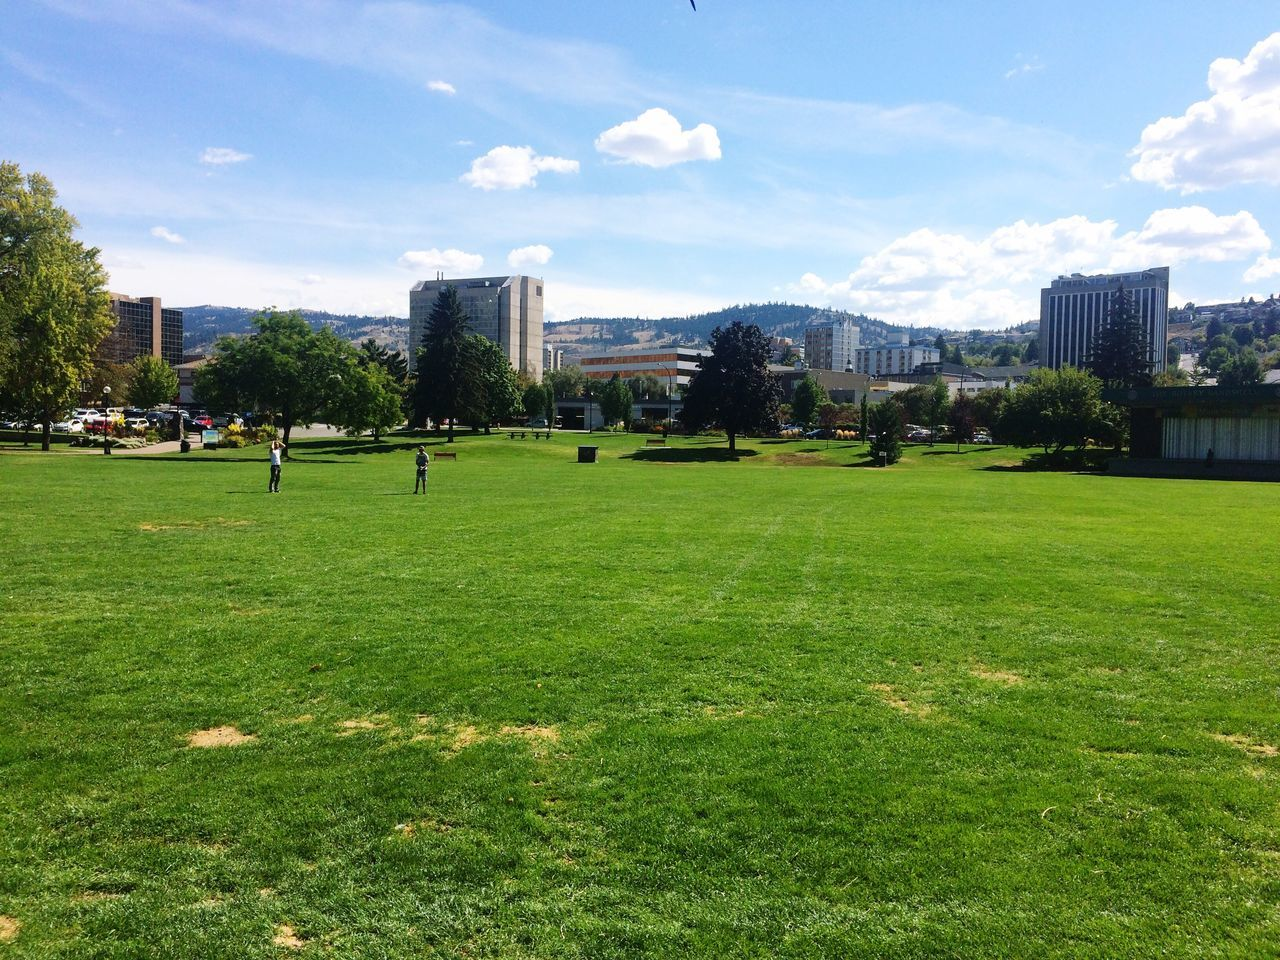 grass, building exterior, architecture, built structure, tree, green color, sky, real people, sunlight, growth, nature, day, leisure activity, cloud - sky, outdoors, field, park - man made space, lawn, city, playing, playing field, large group of people, lifestyles, men, sport, beauty in nature, golf, green - golf course, golf course, people